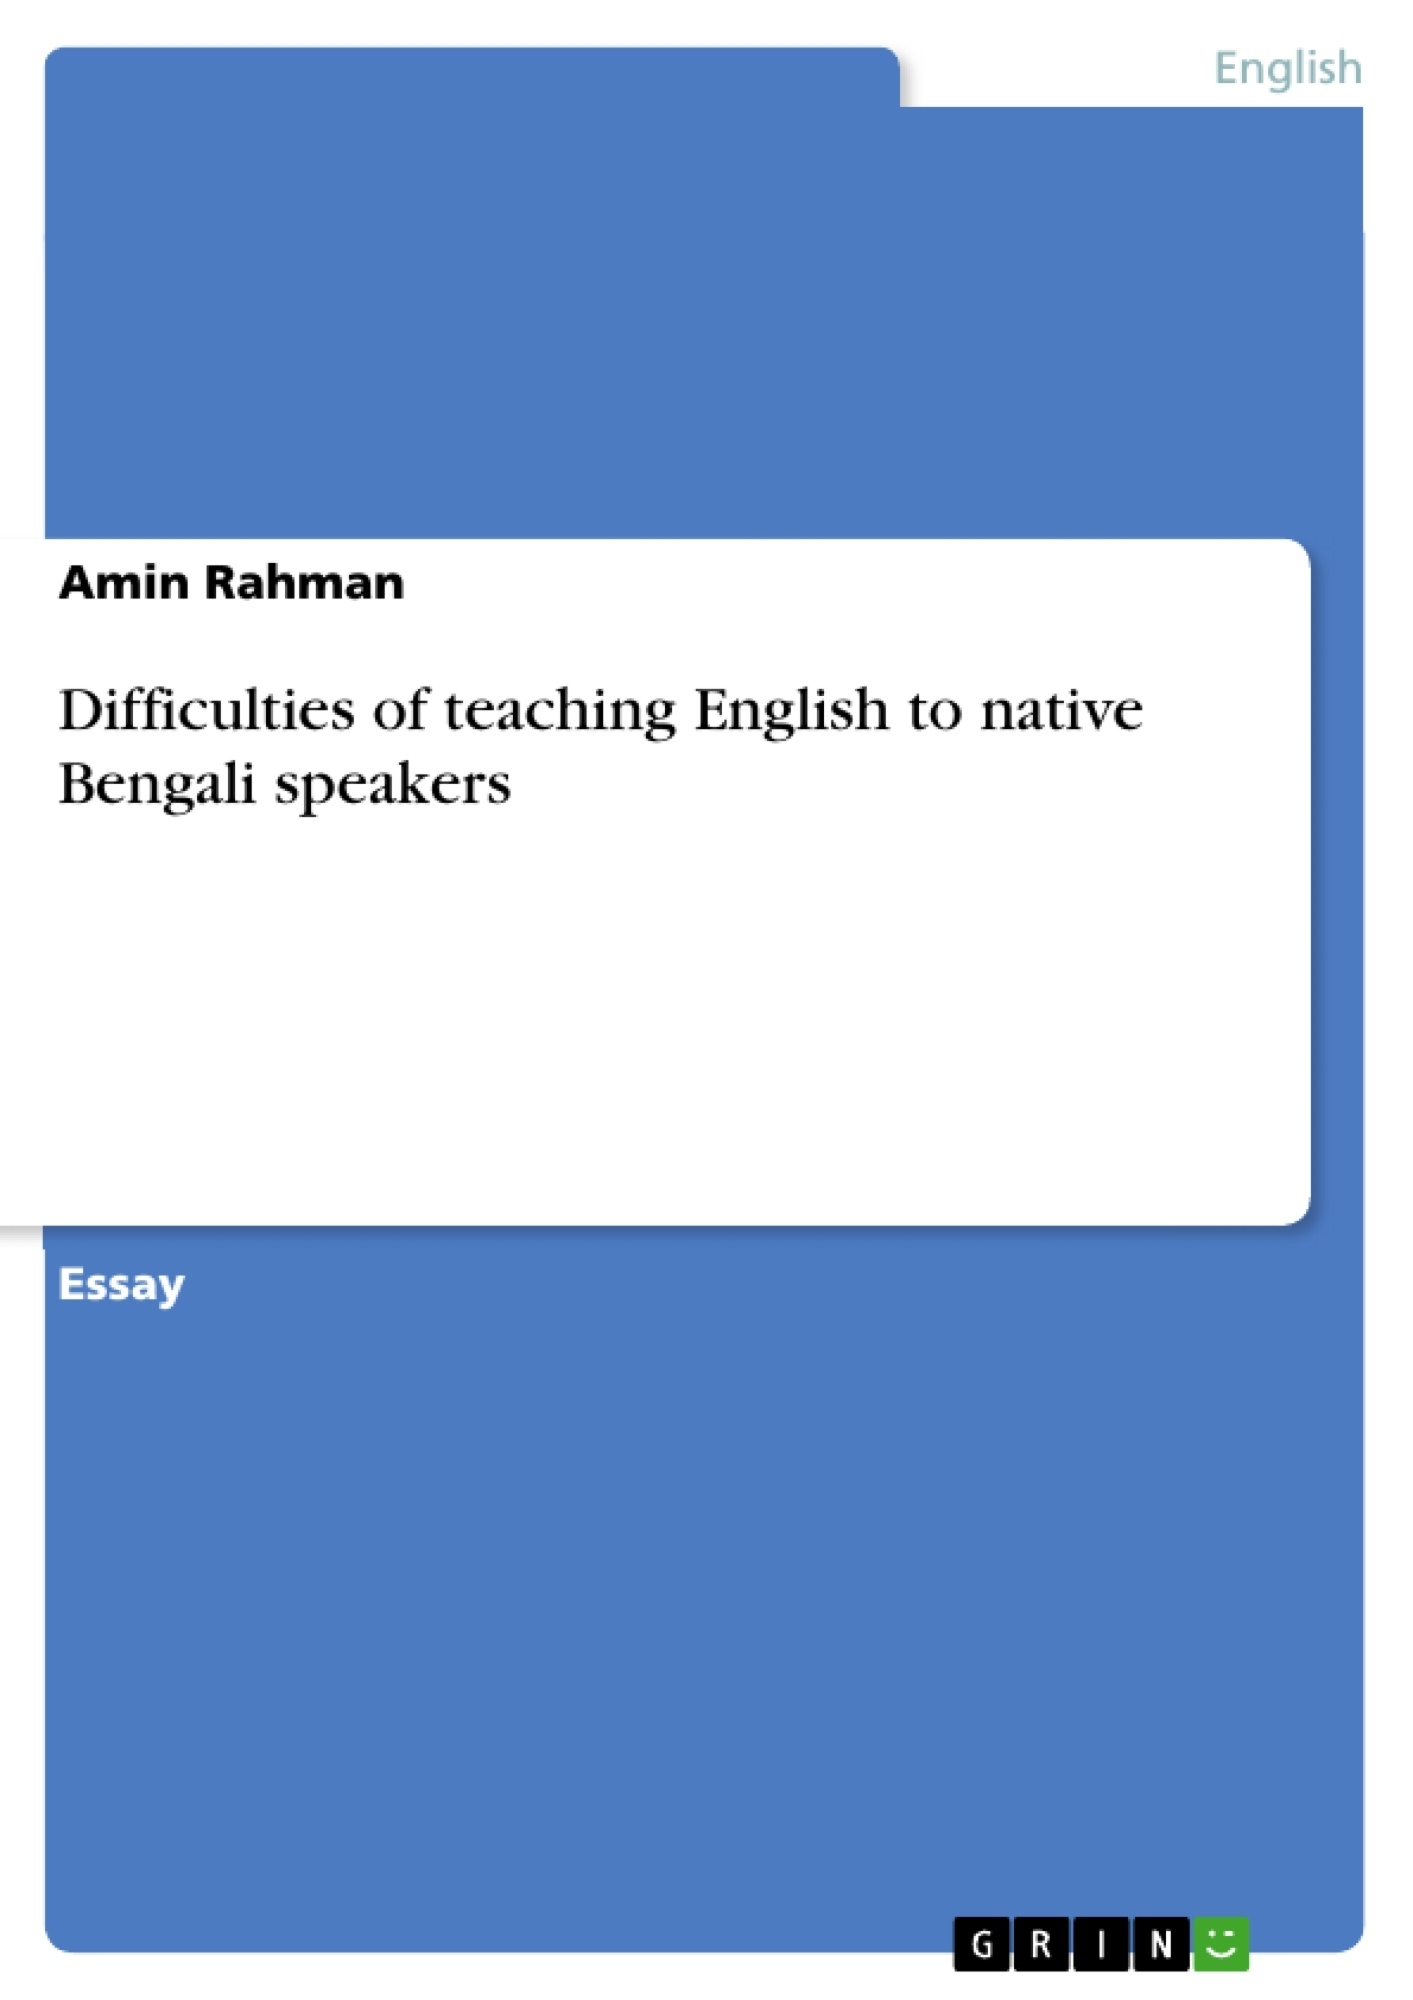 Title: Difficulties of teaching English to native Bengali speakers